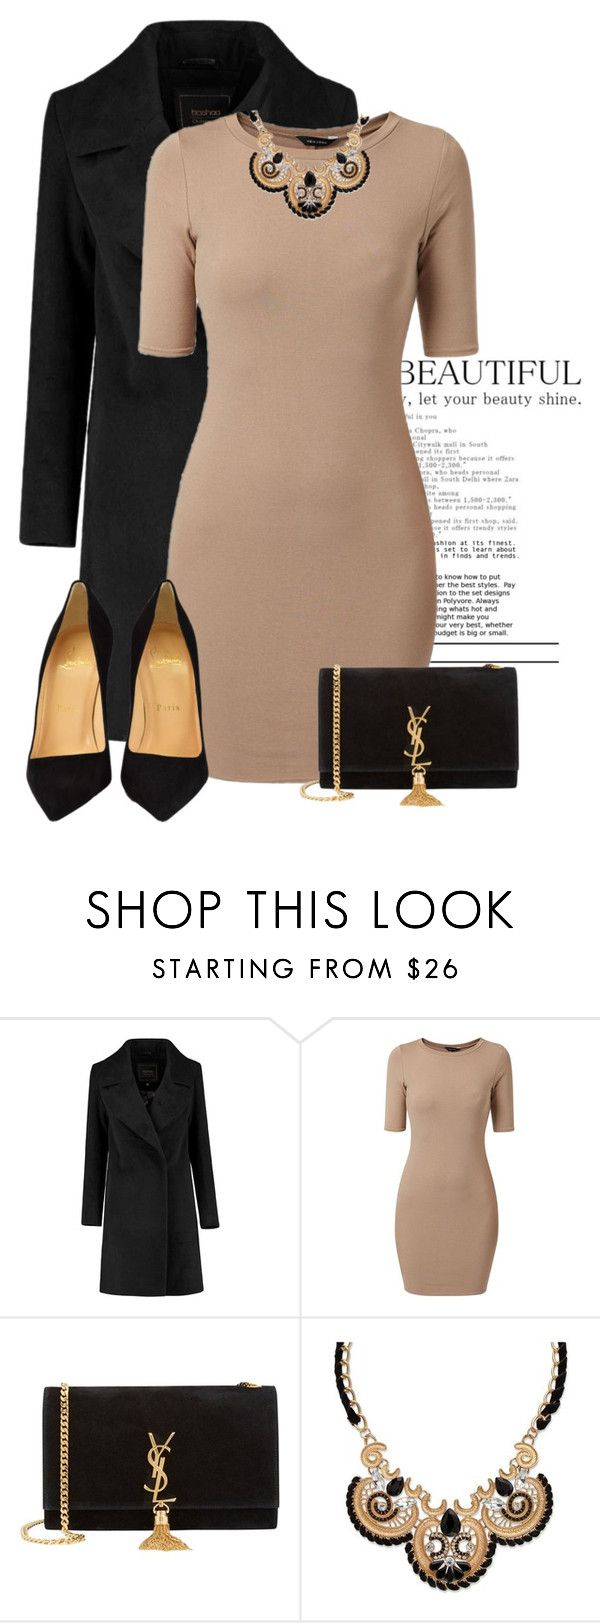 """Laura"" by swaggass ❤ liked on Polyvore featuring Yves Saint Laurent, Palm Beach Jewelry, Christian Louboutin, women's clothing, women, female, woman, misses and juniors"